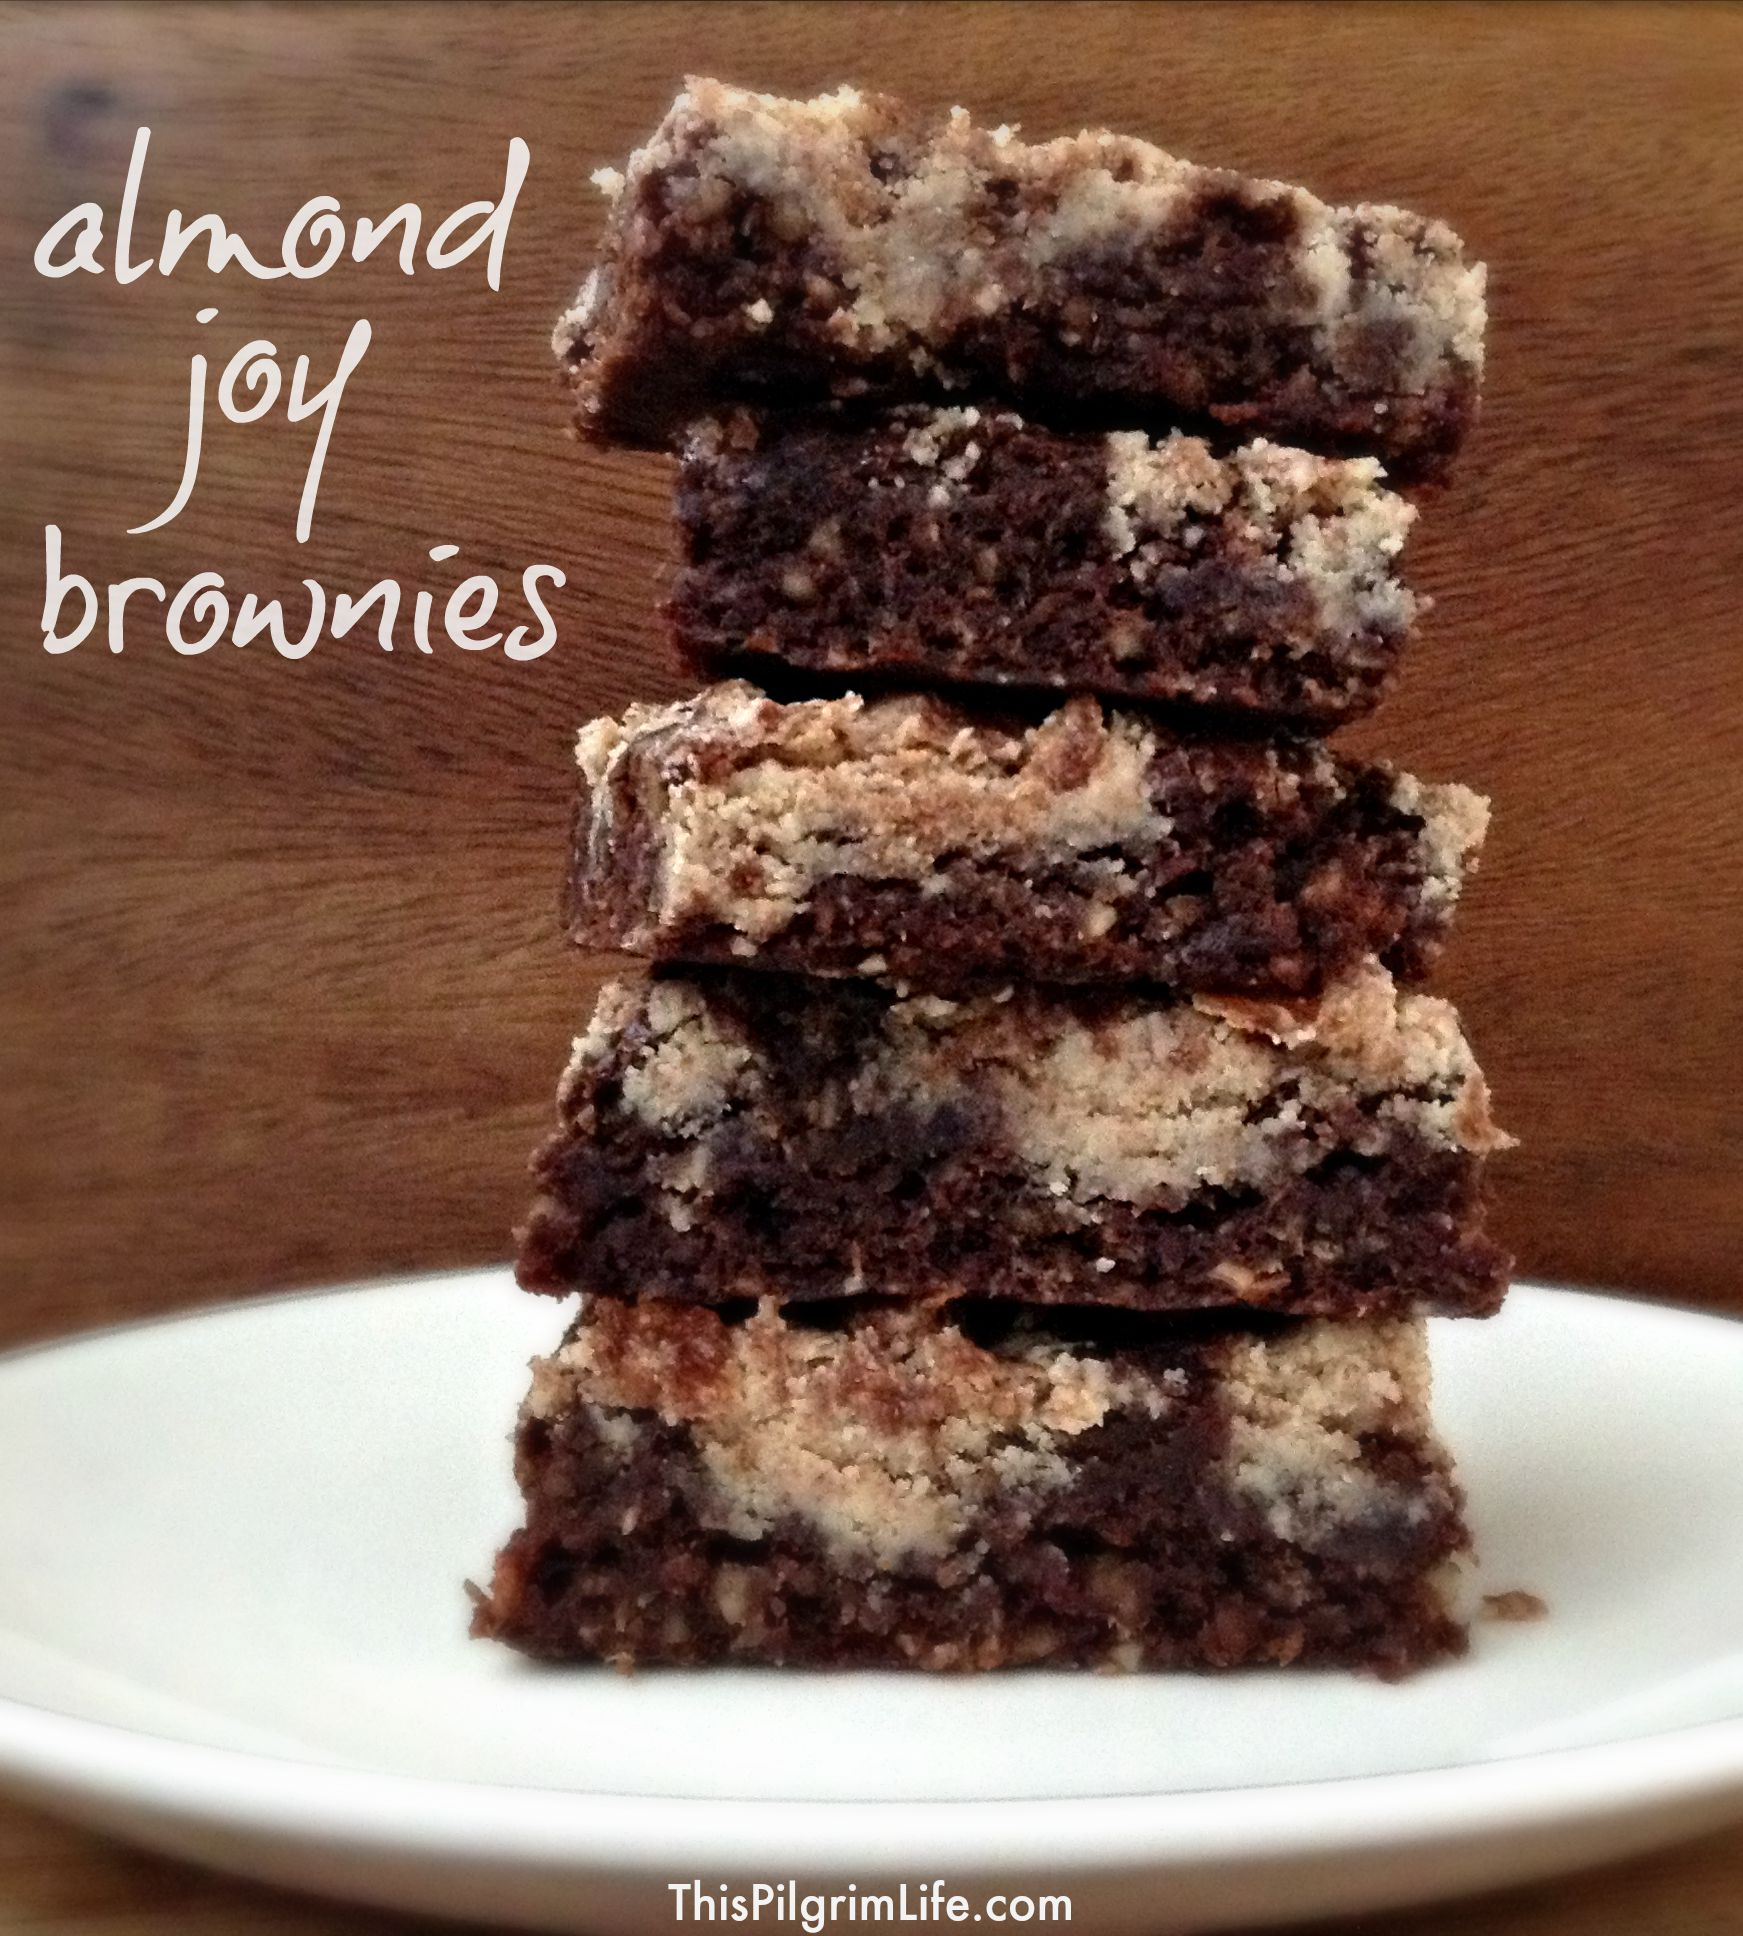 These almond joy brownies are delicious AND gluten-free and dairy-free. Quick and simple to make, too.